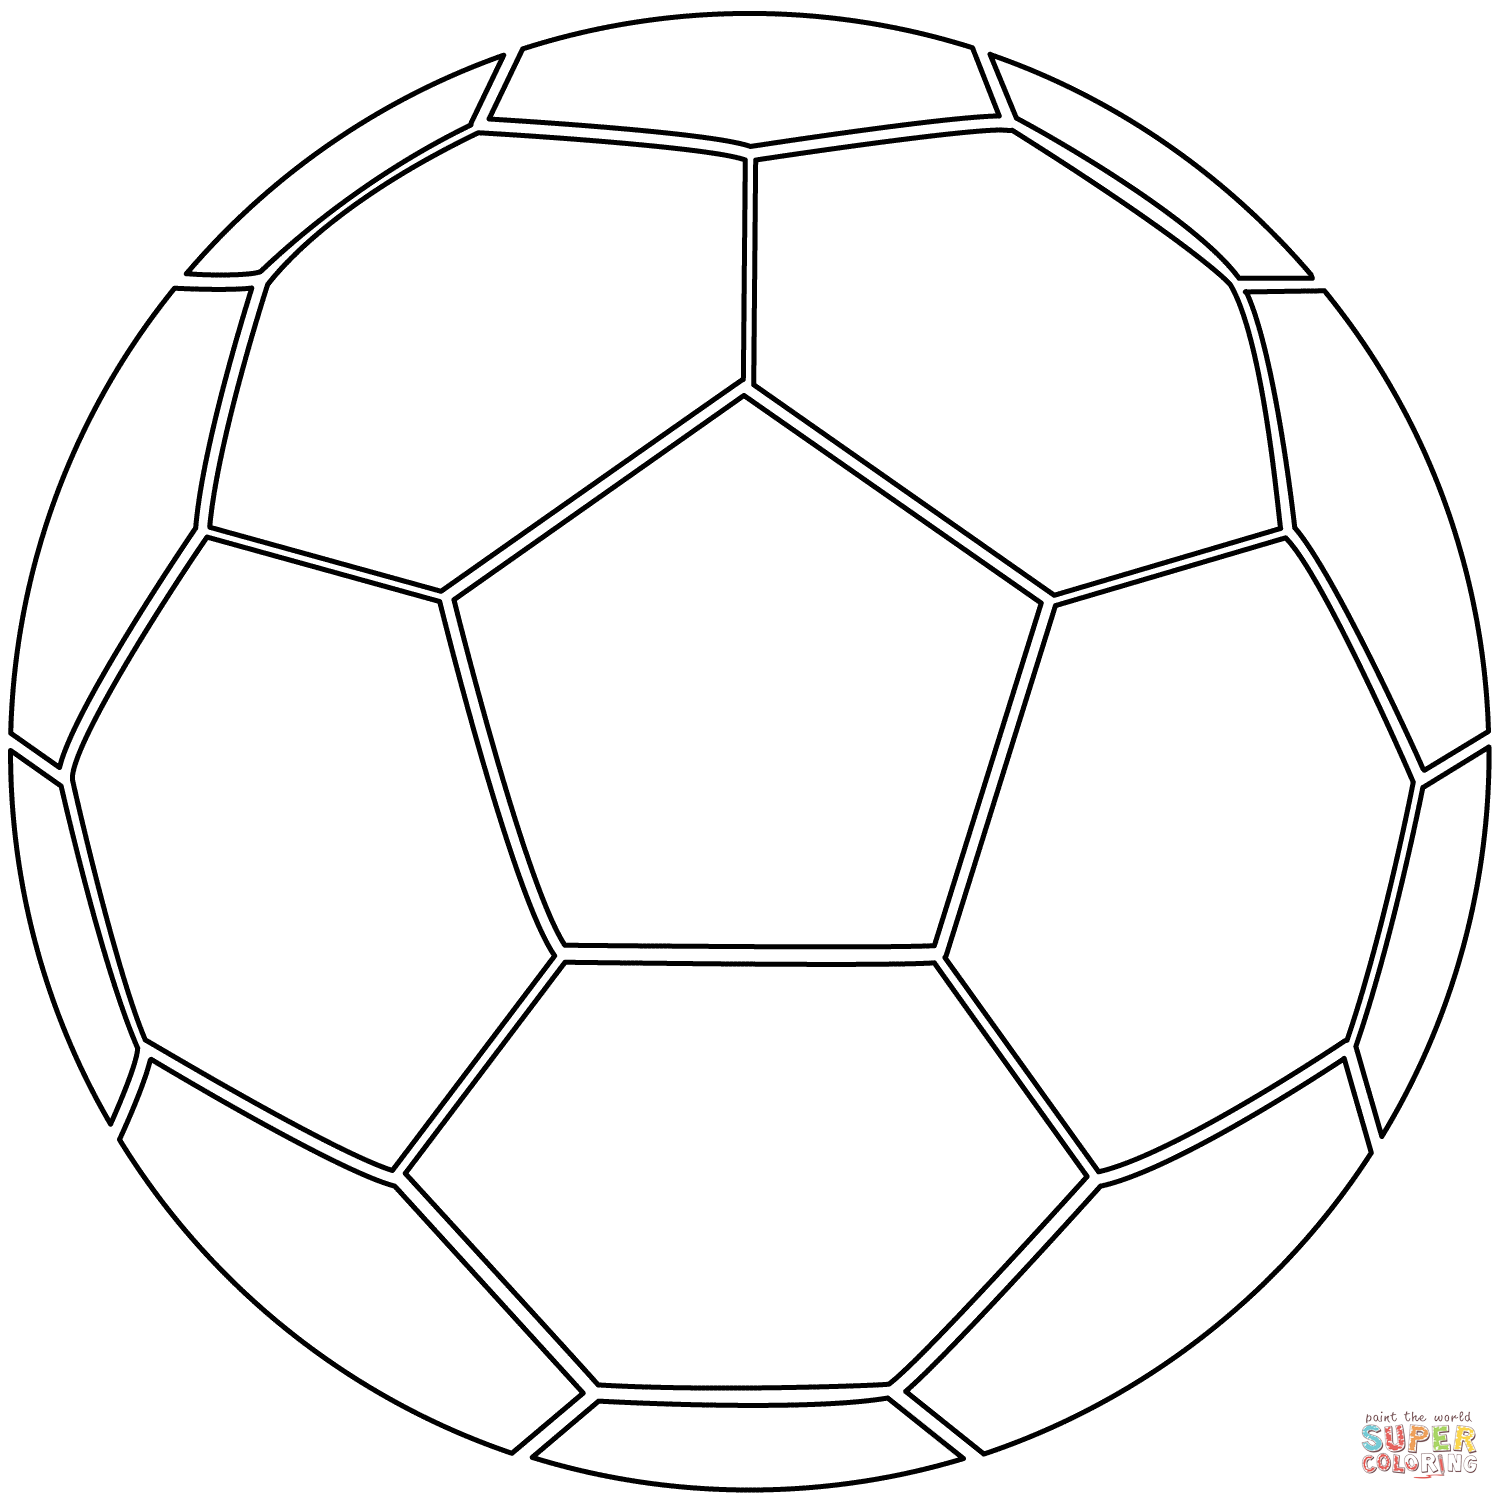 soccer ball coloring page free printable soccer coloring pages for kids ball page soccer coloring